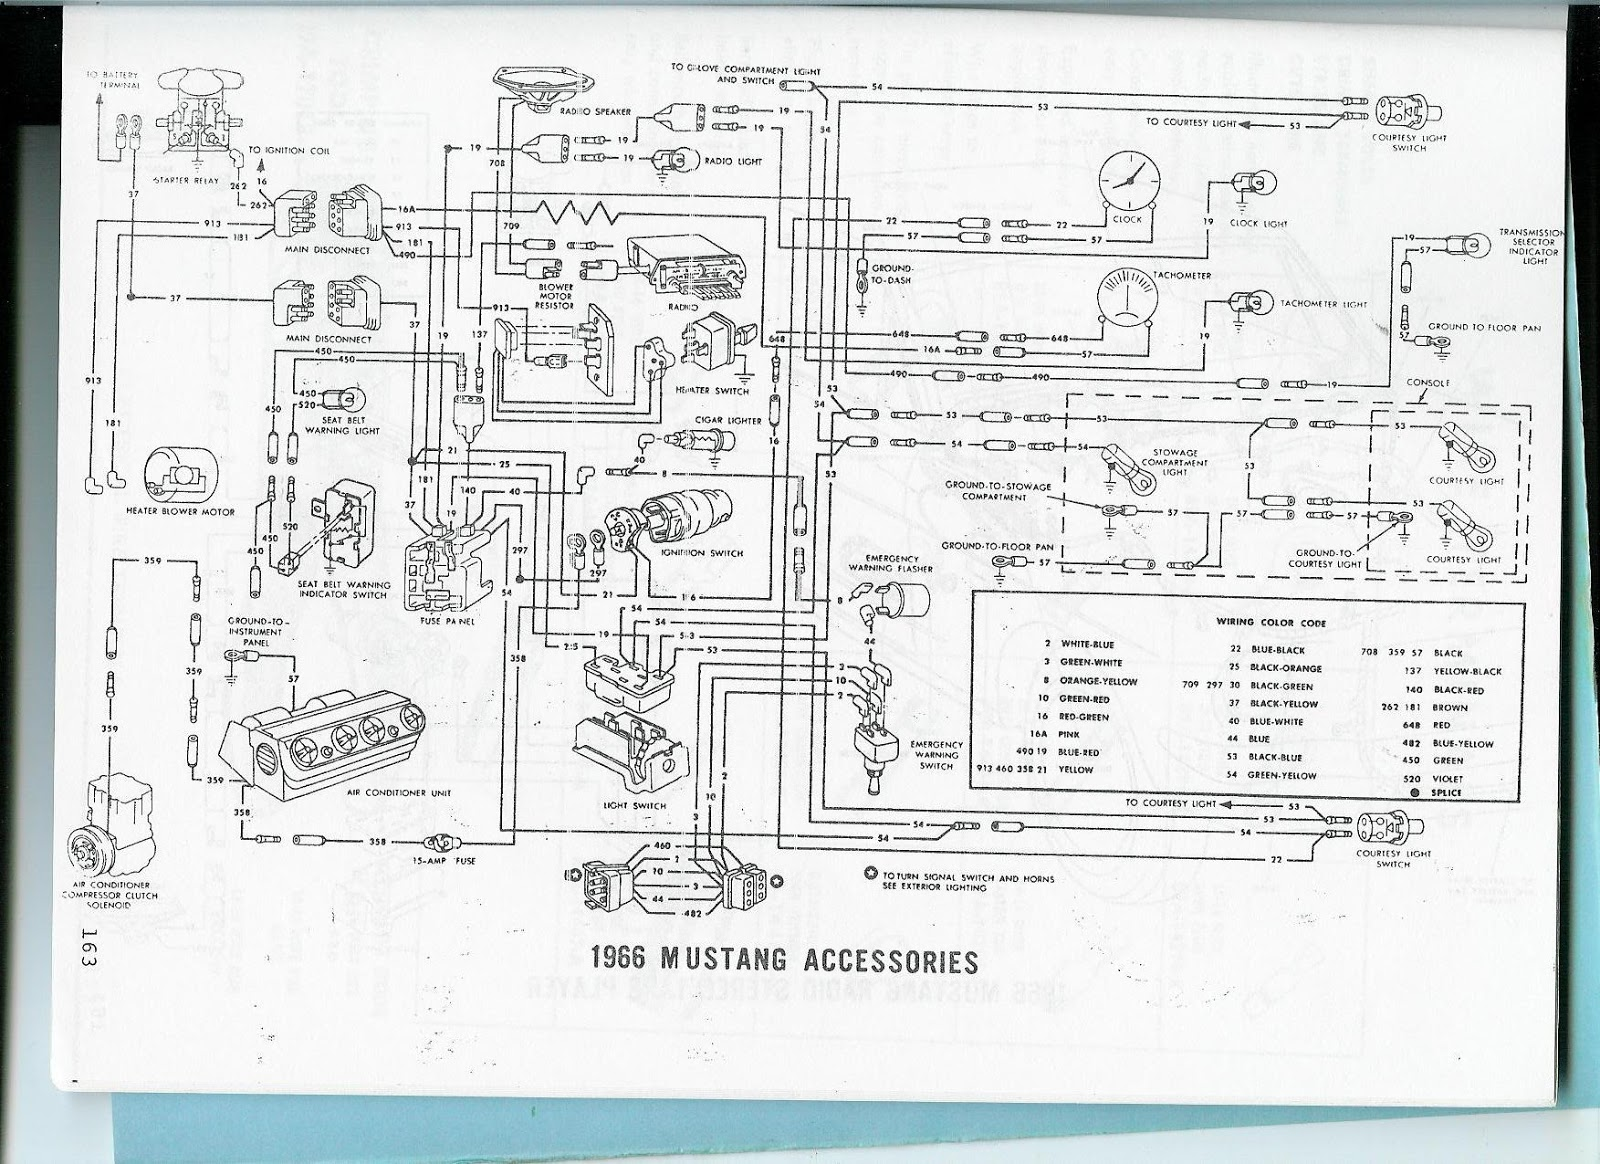 66 mustang wiring diagram wiring diagrams u2022 1991 ford mustang engine diagram 1966 mustang wiring [ 1600 x 1164 Pixel ]